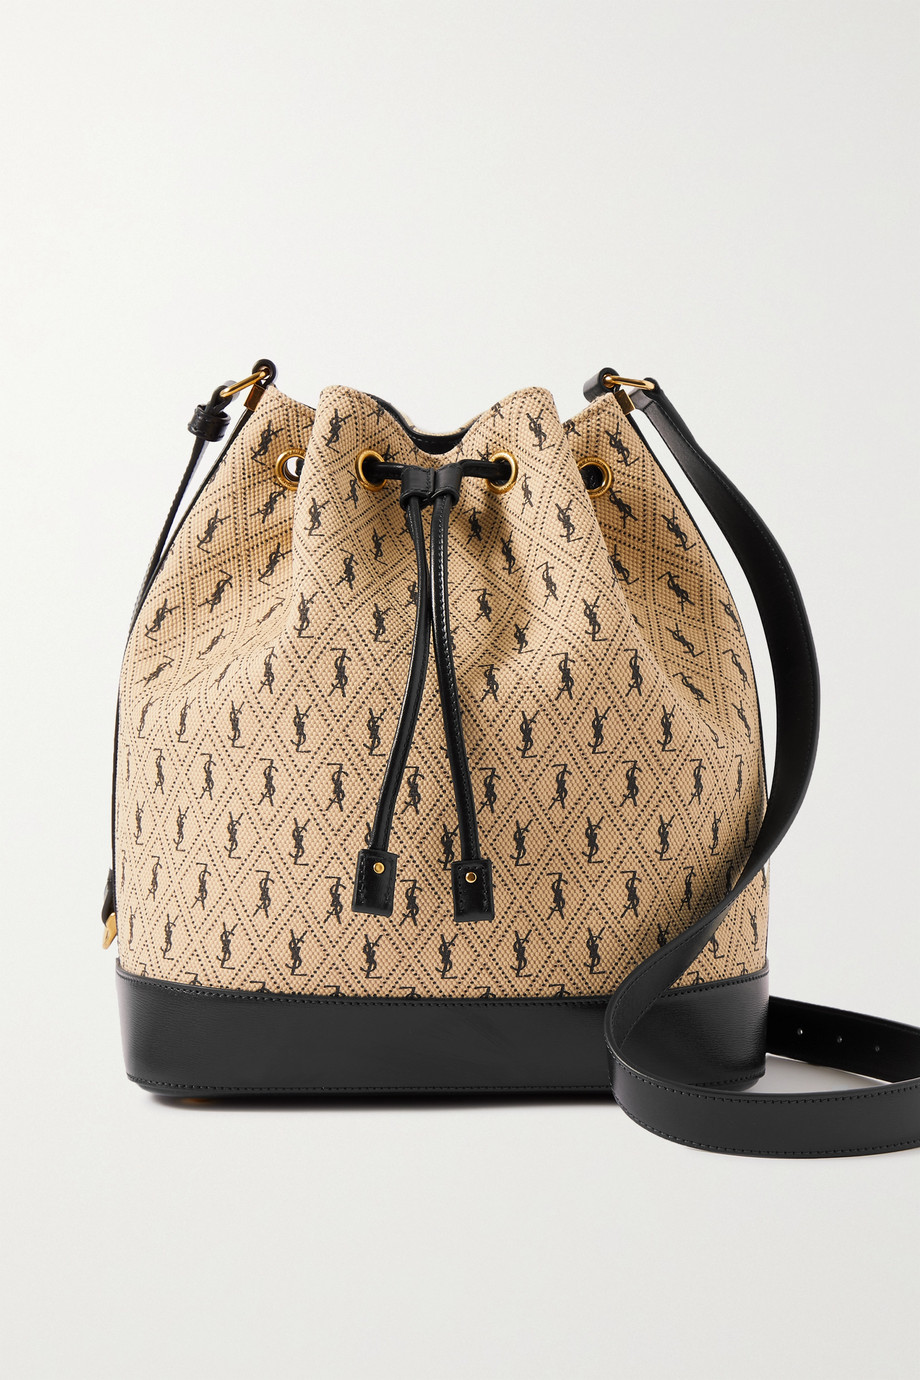 SAINT LAURENT Monogram small leather-trimmed printed canvas bucket bag